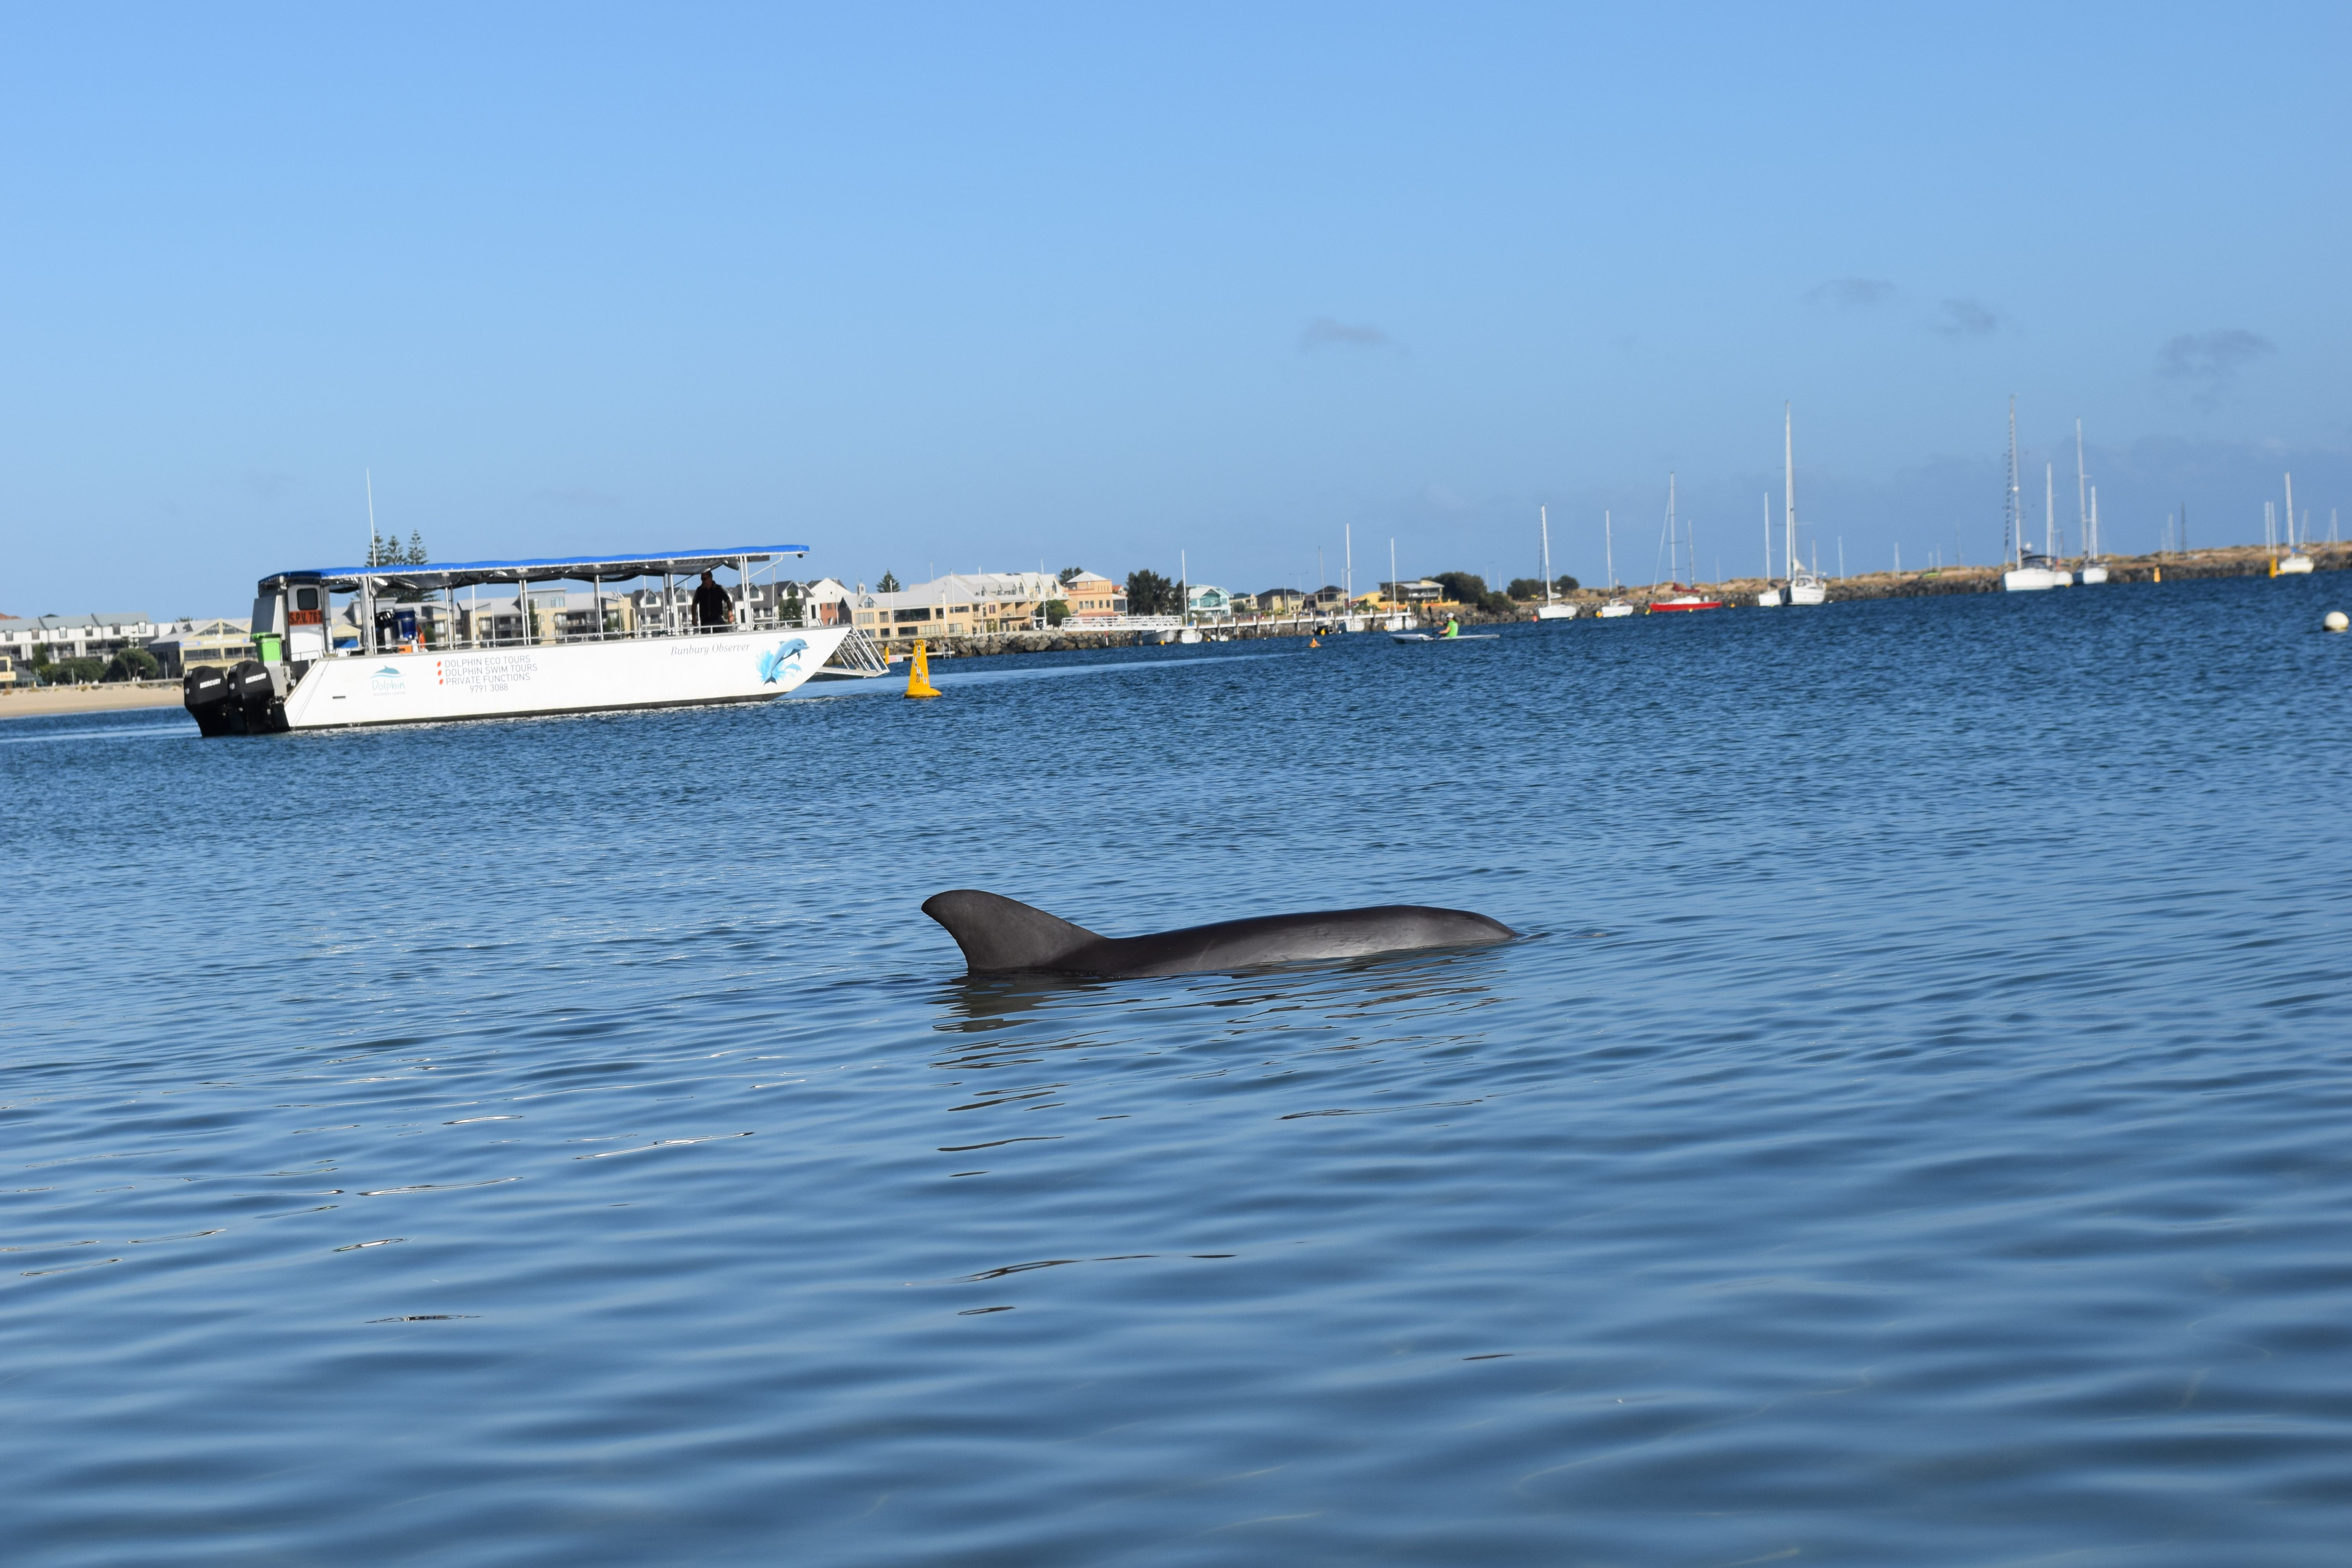 One of our wild dolphins sleeping just outside the